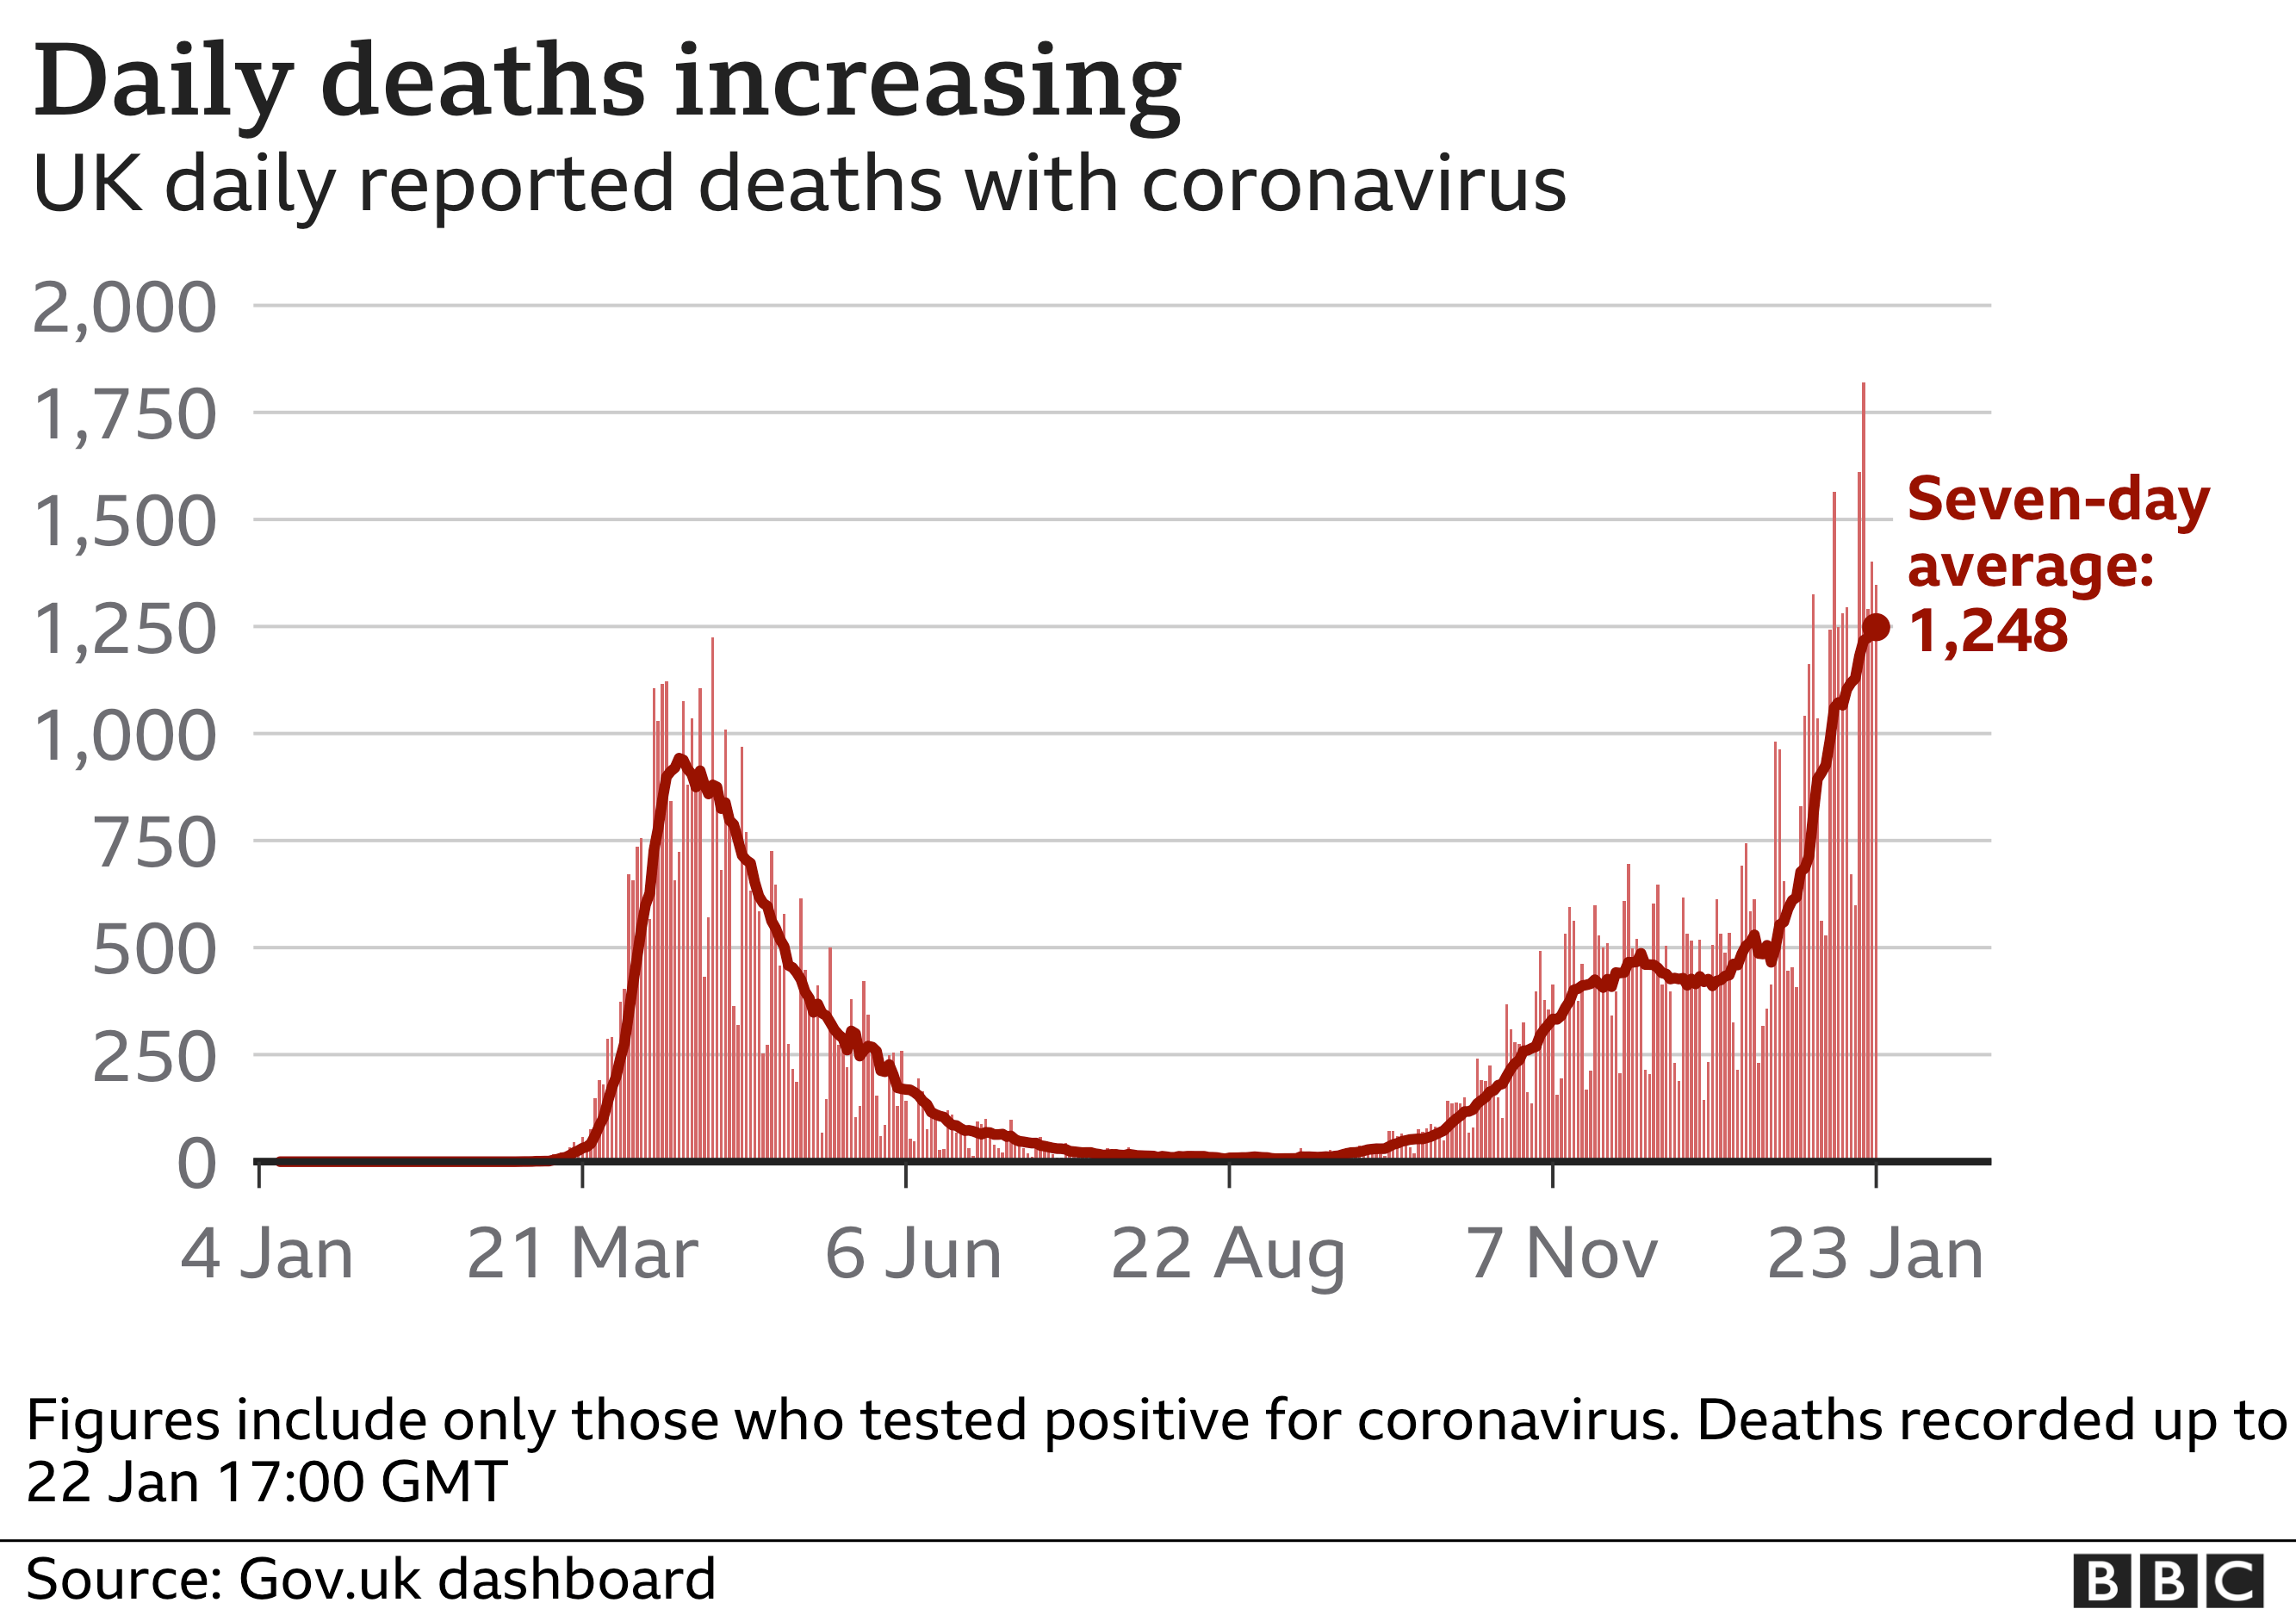 Chart showing daily deaths are increasing